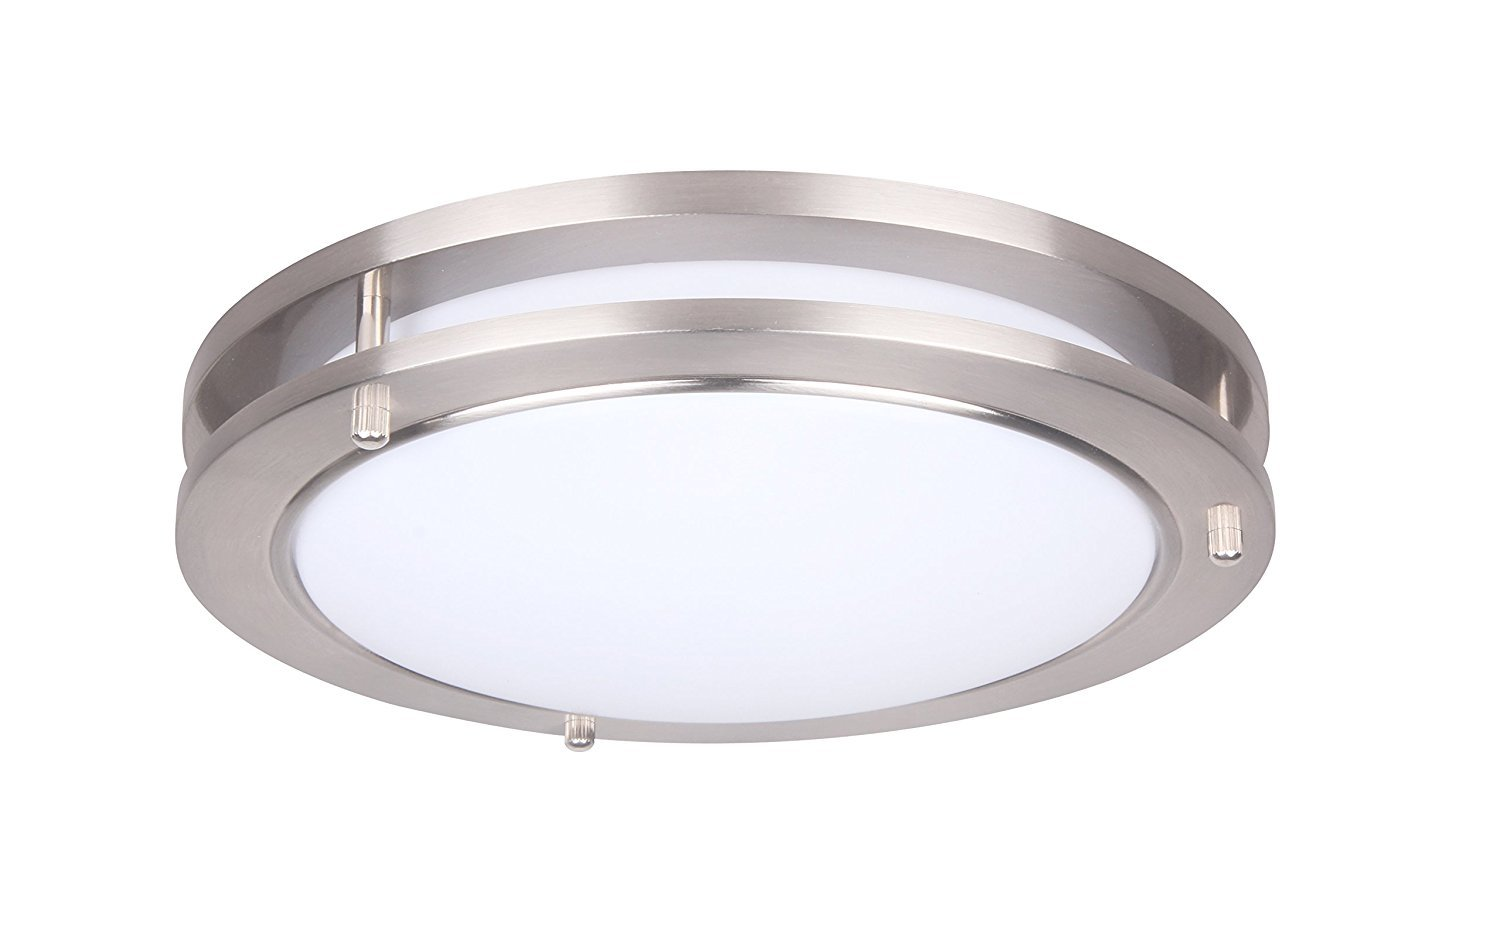 Yeuloum 15 inch LED Flush Mount Ceiling Light Fixture, Dimmable, Dust-Proof, 1925 Lumen, 27.5W Replace 200W, Satin Nickel Finish, ETL/ES Rated